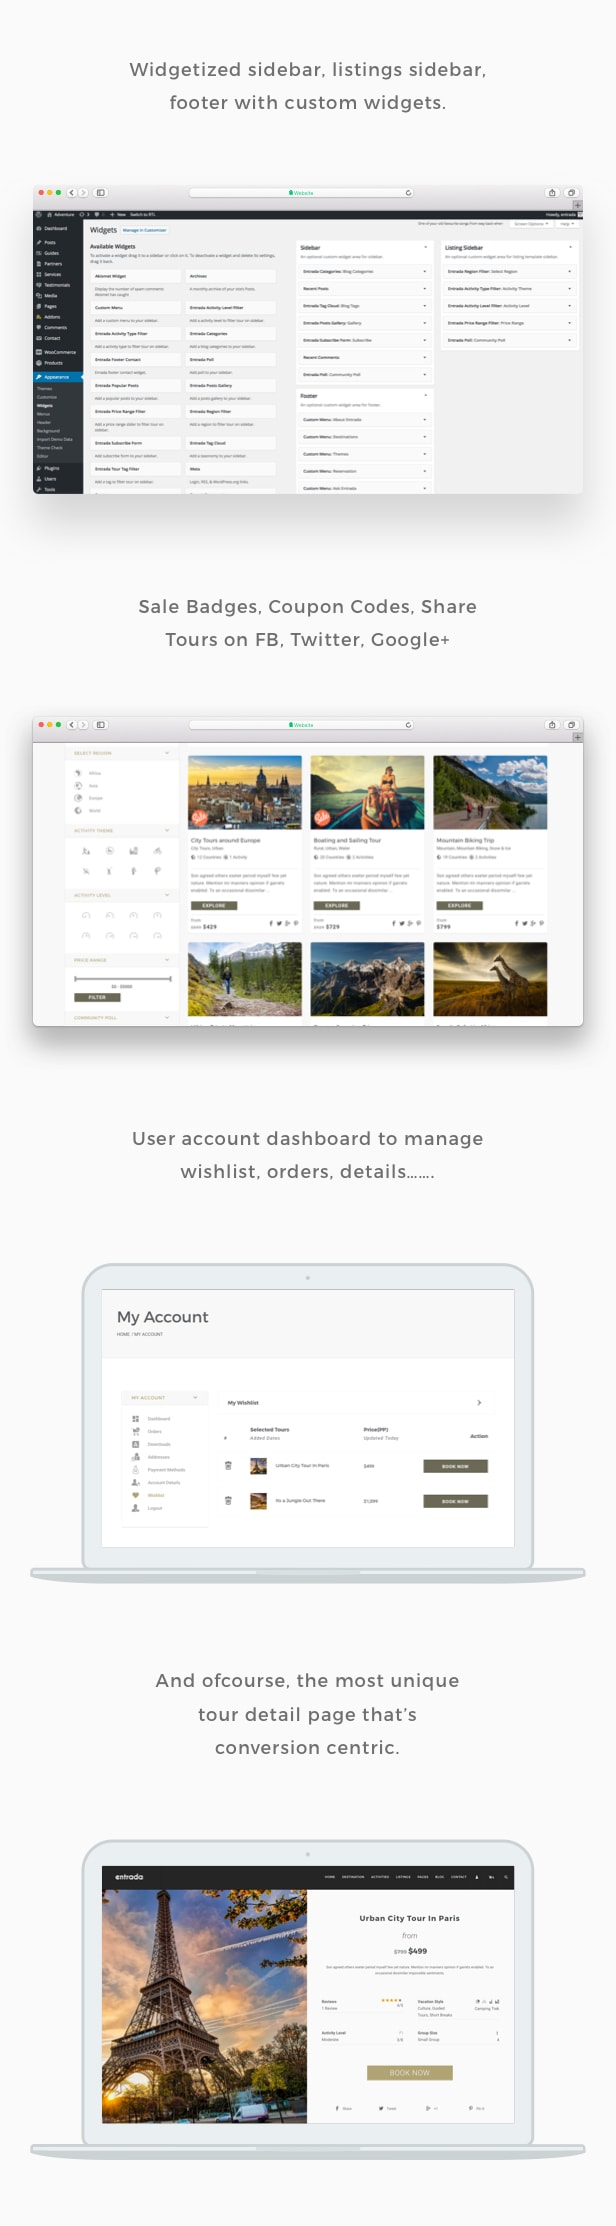 Tour Booking - Tour Adventure WordPress Theme - Entrada - 5